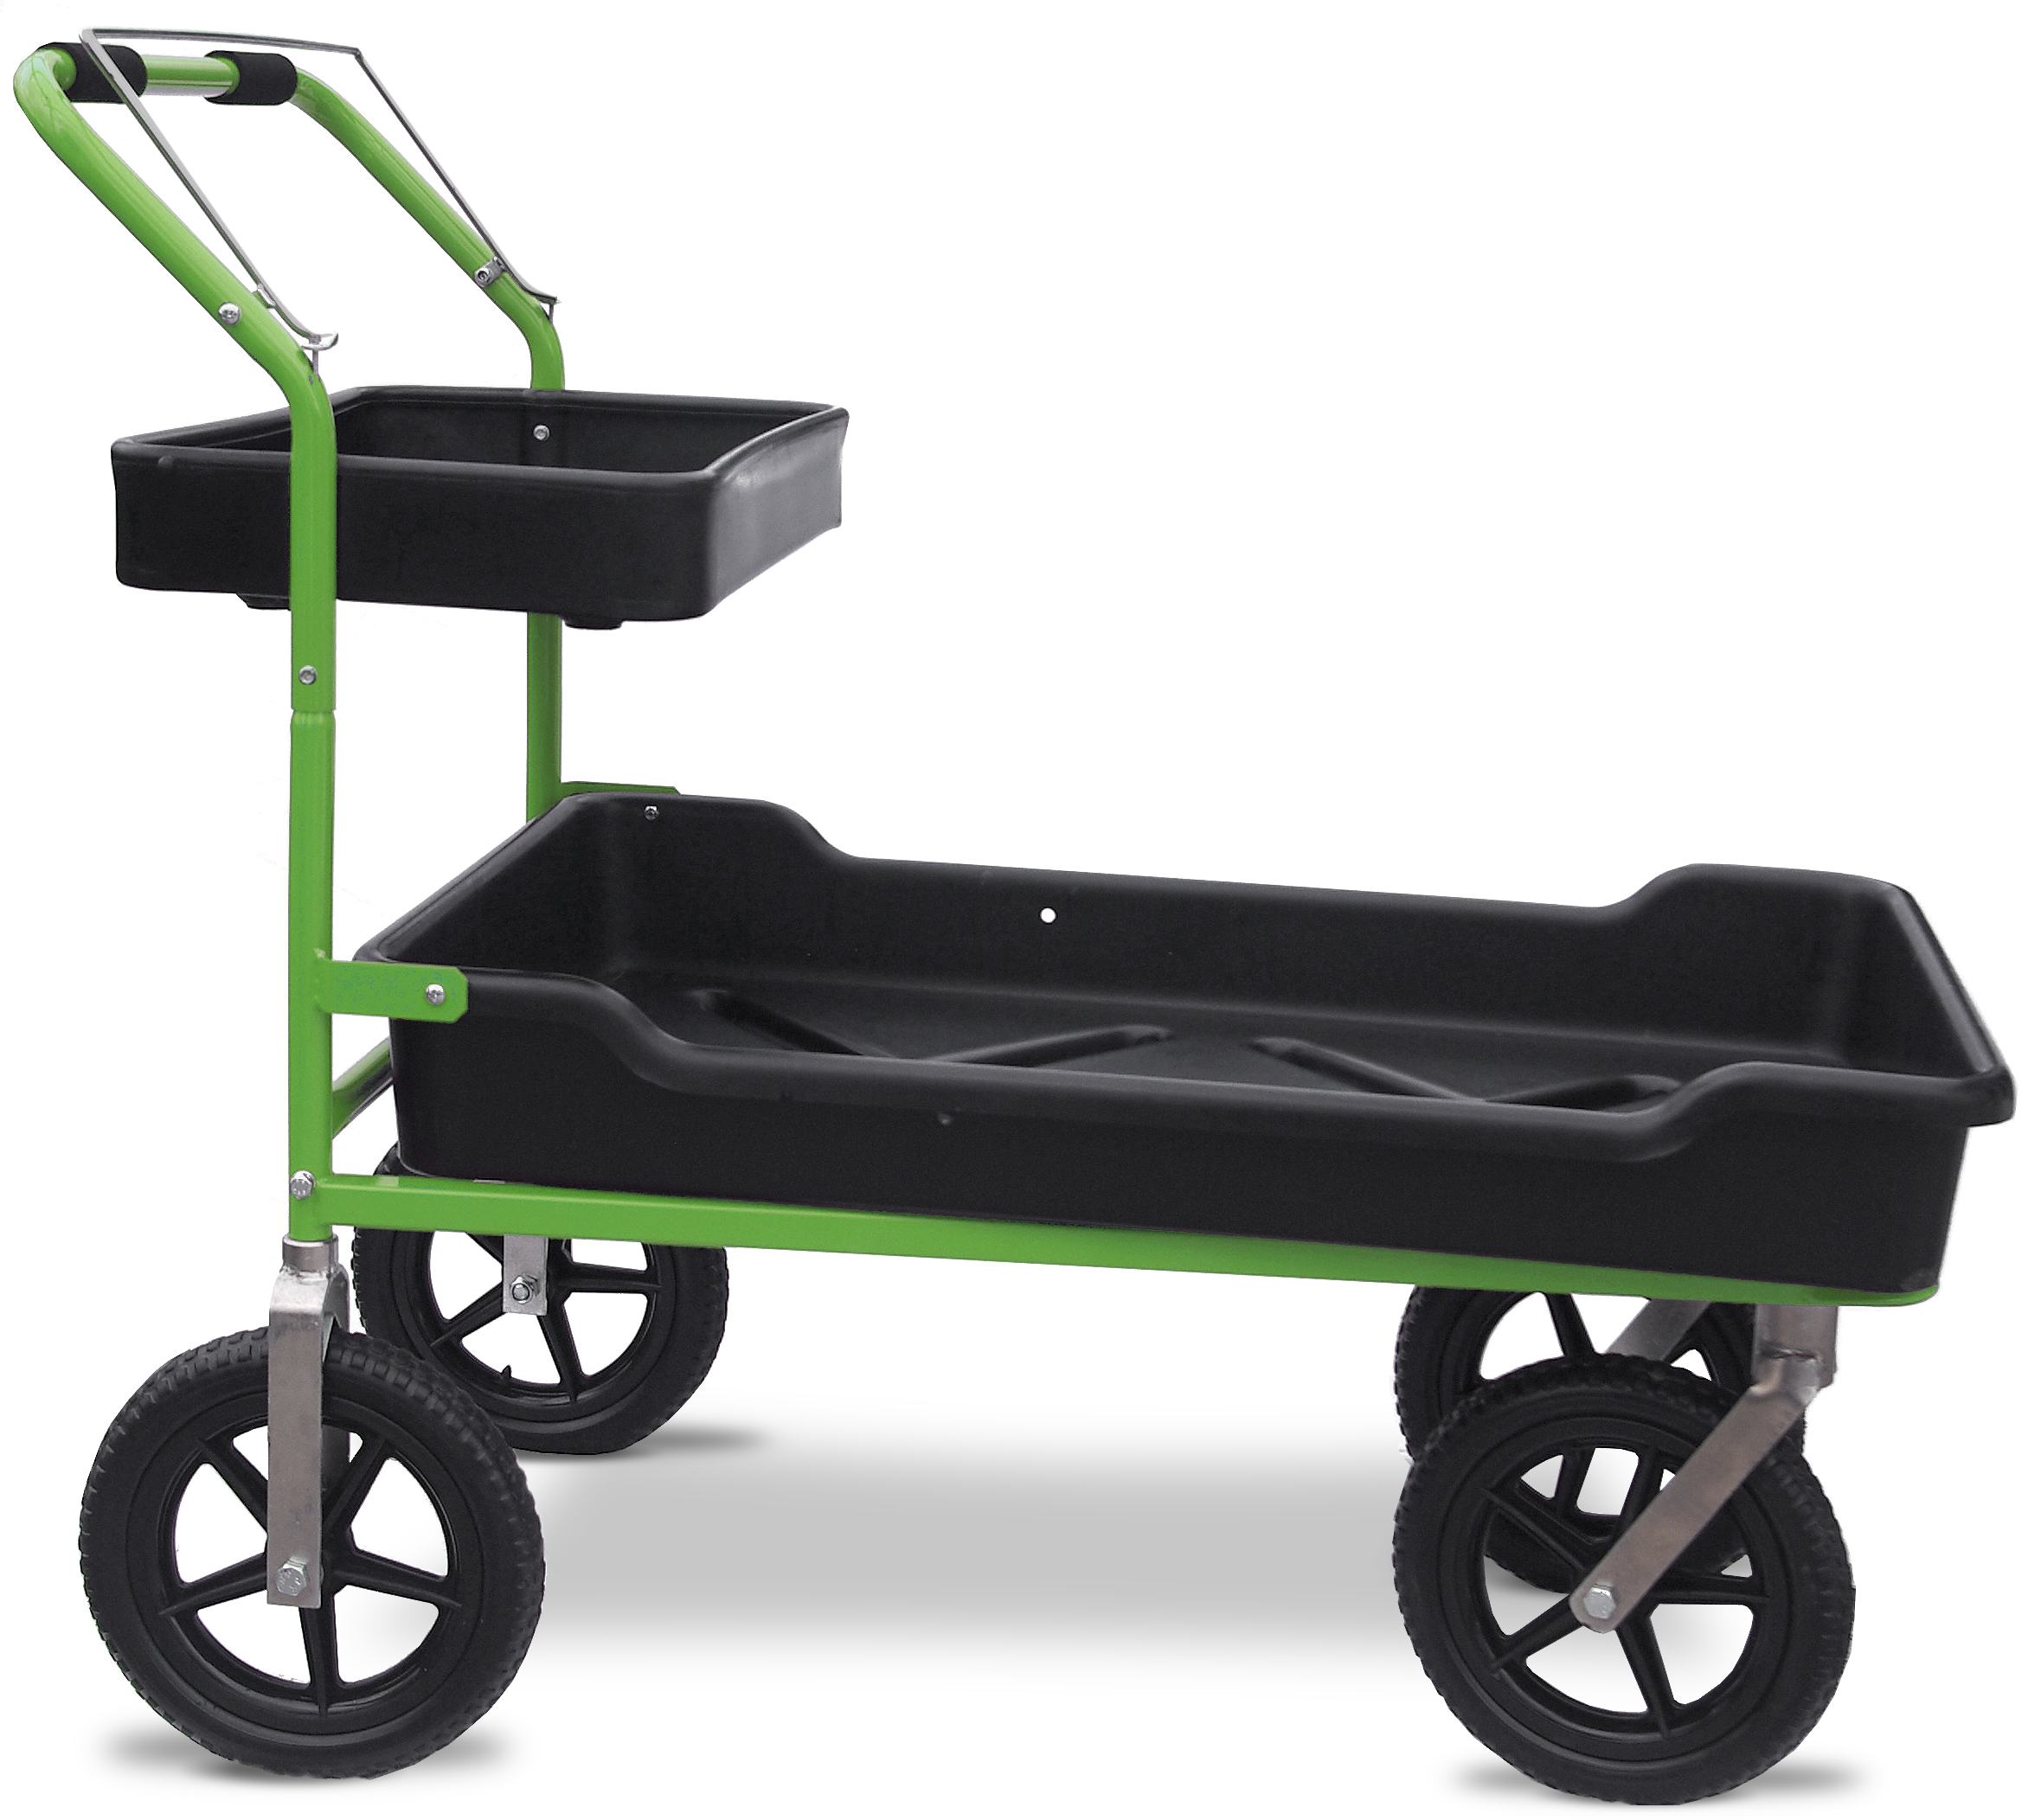 Standard Garden Retail Trolley Woodham New Zealand